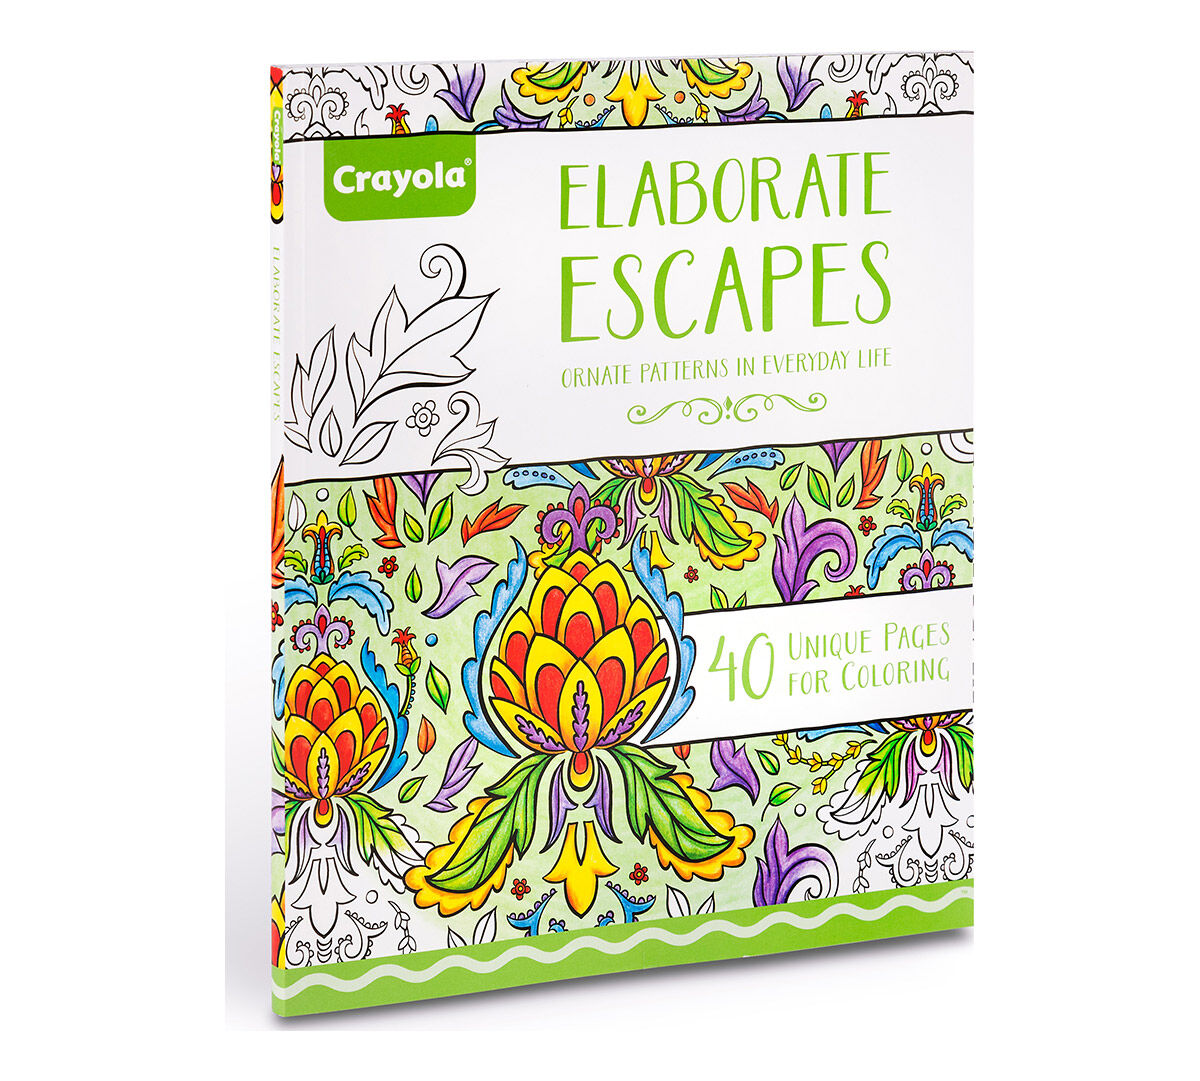 Crayola Elaborate Escapes Adult Coloring Art Activity 40 Pages Perforated Pages Easy Framing Crayola